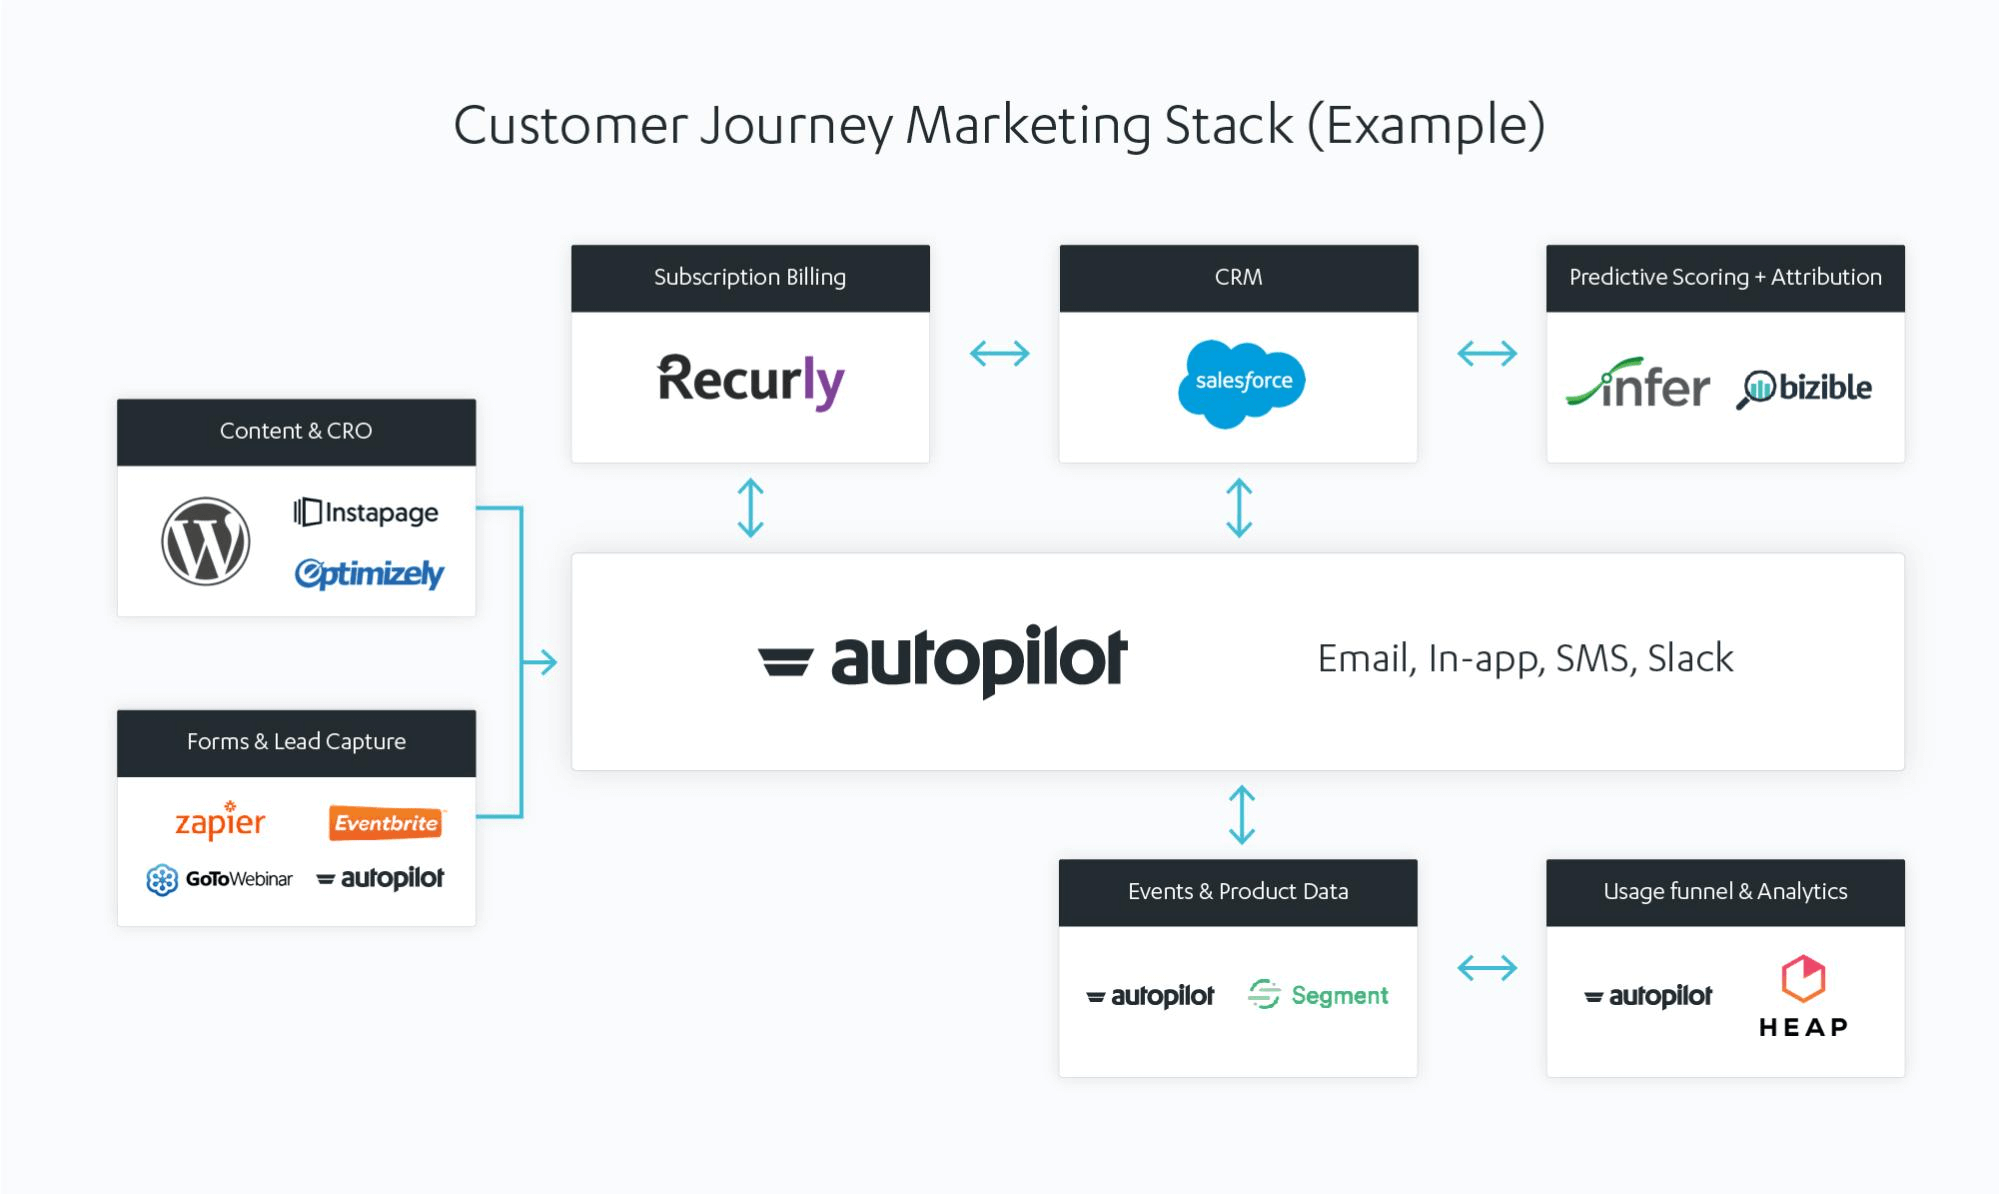 autopilot customer journey marketing stack